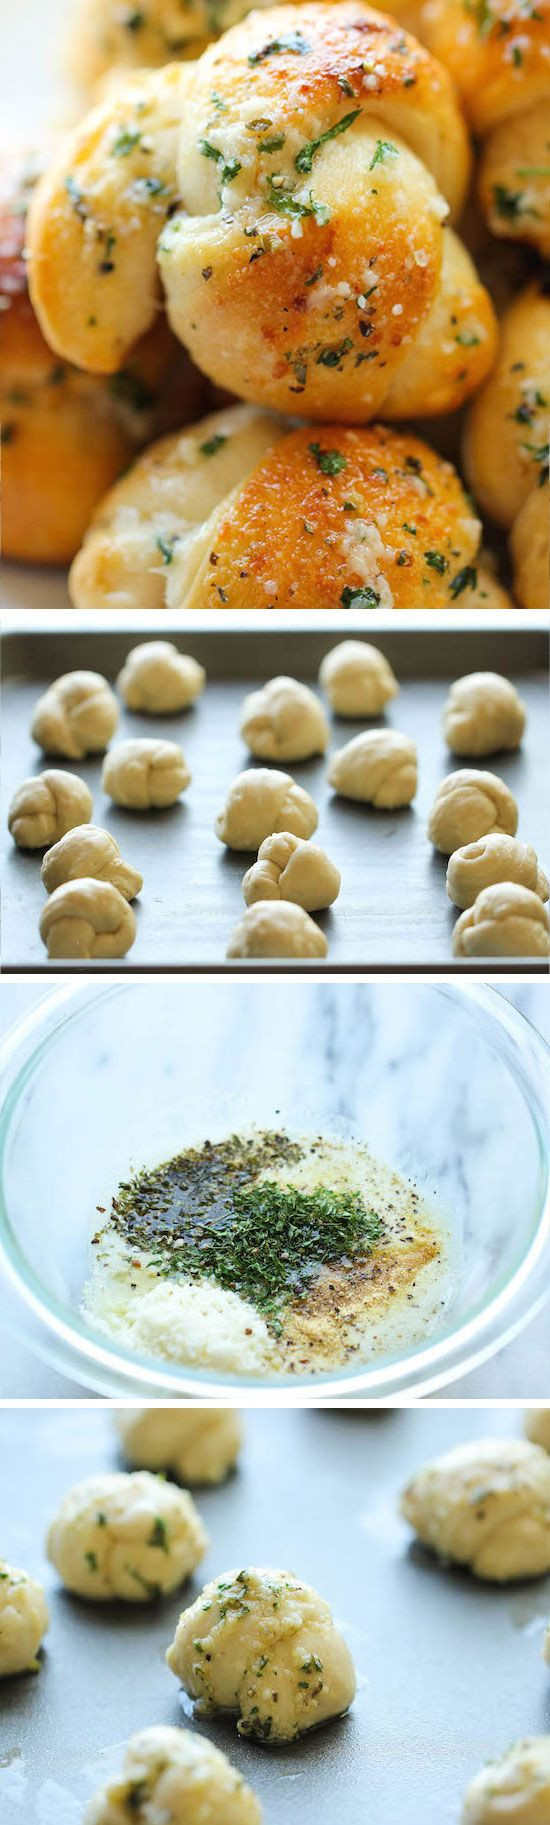 Easy Appetizers For Easter  17 Best ideas about Easter Food on Pinterest